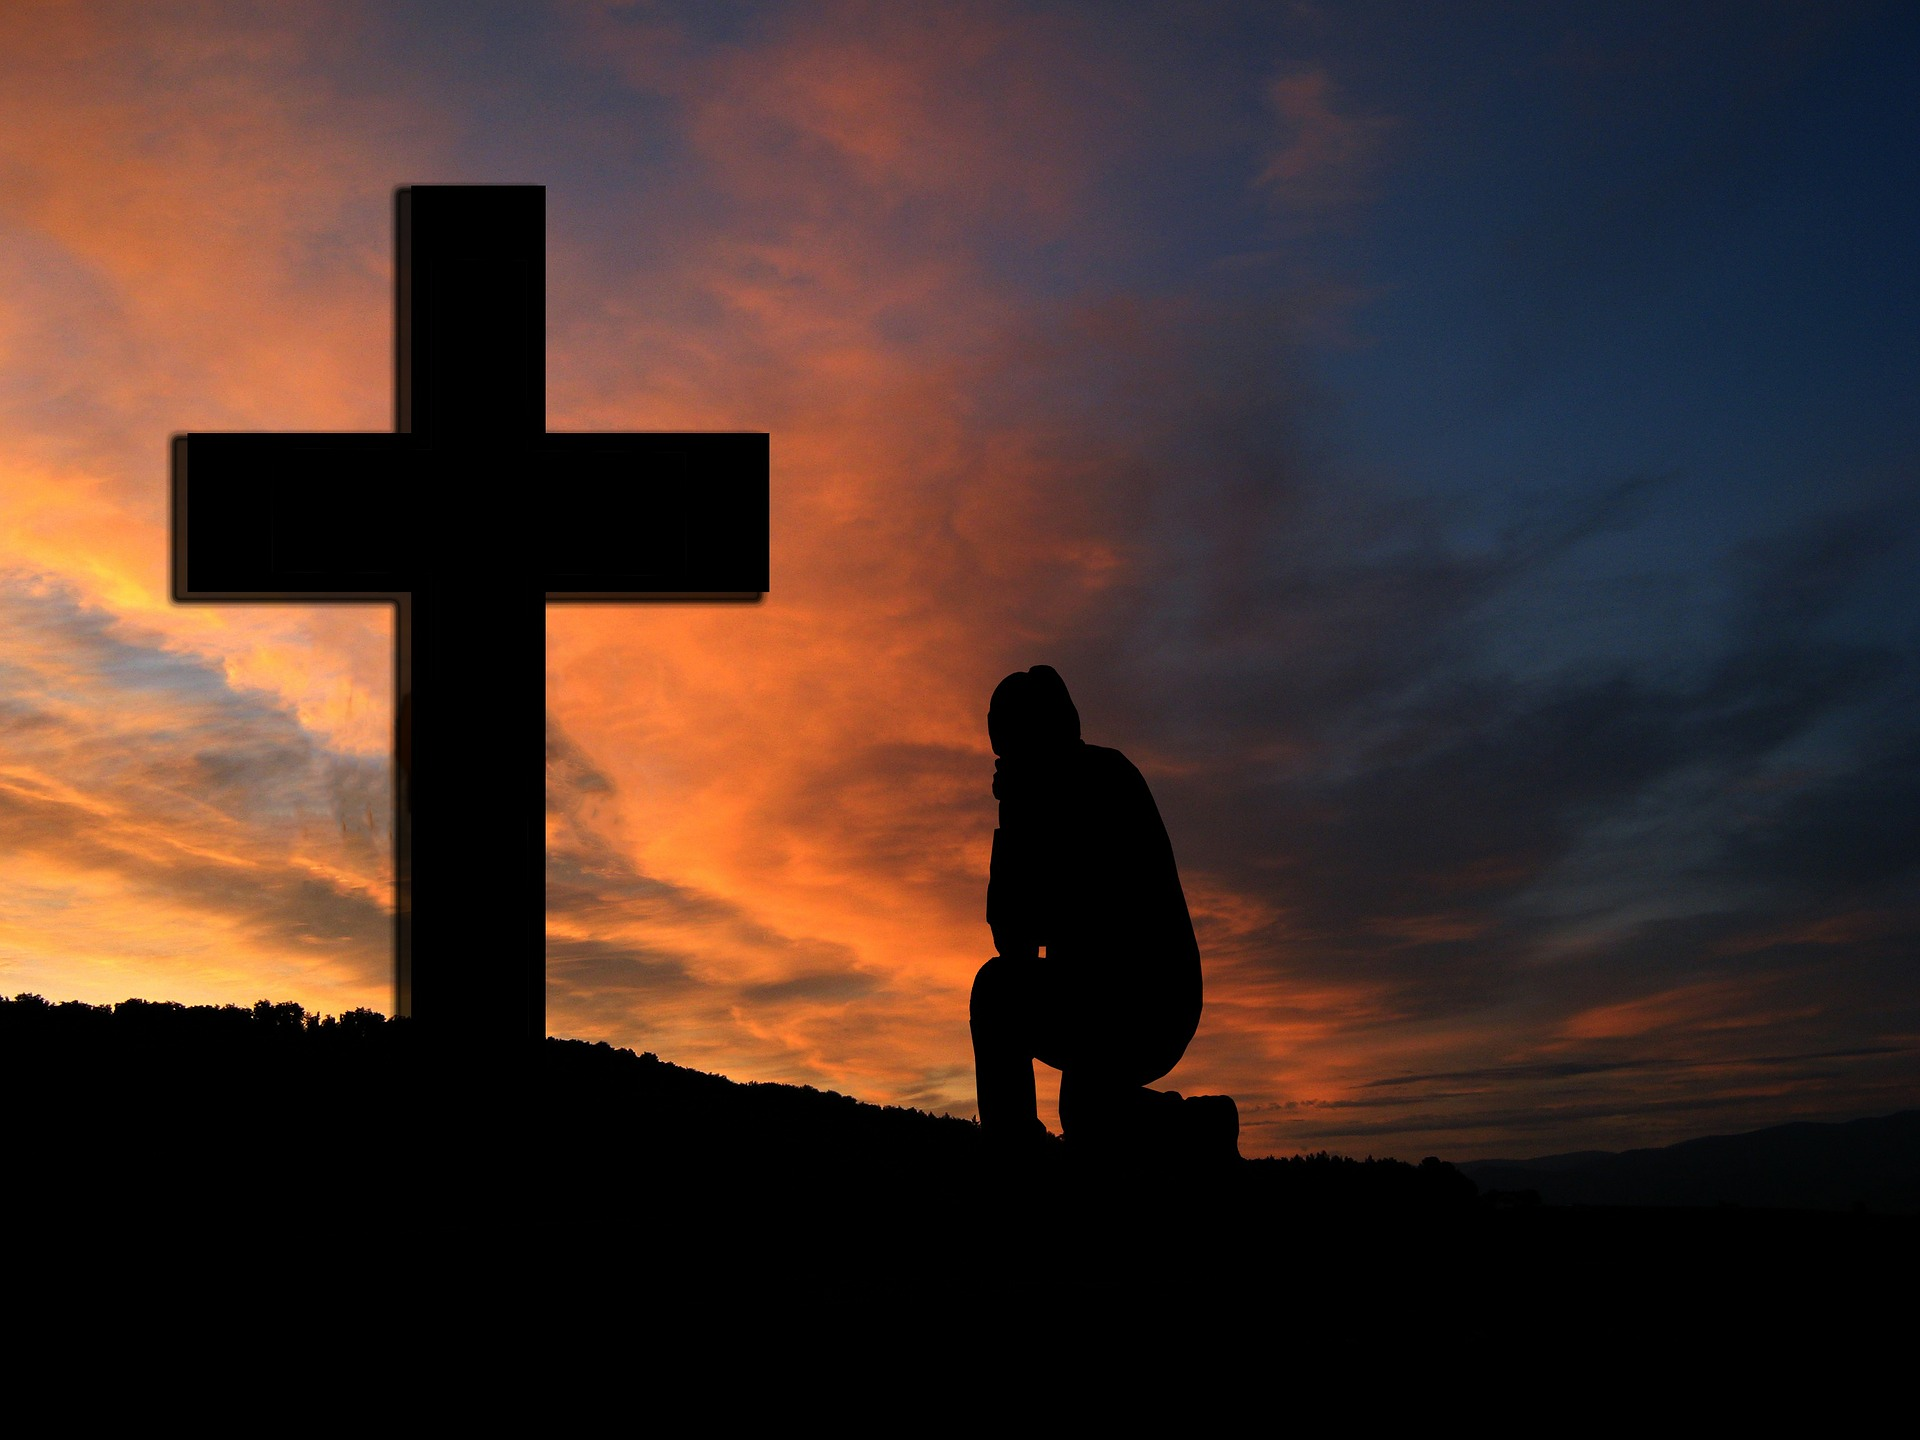 Praying in front of the Cross